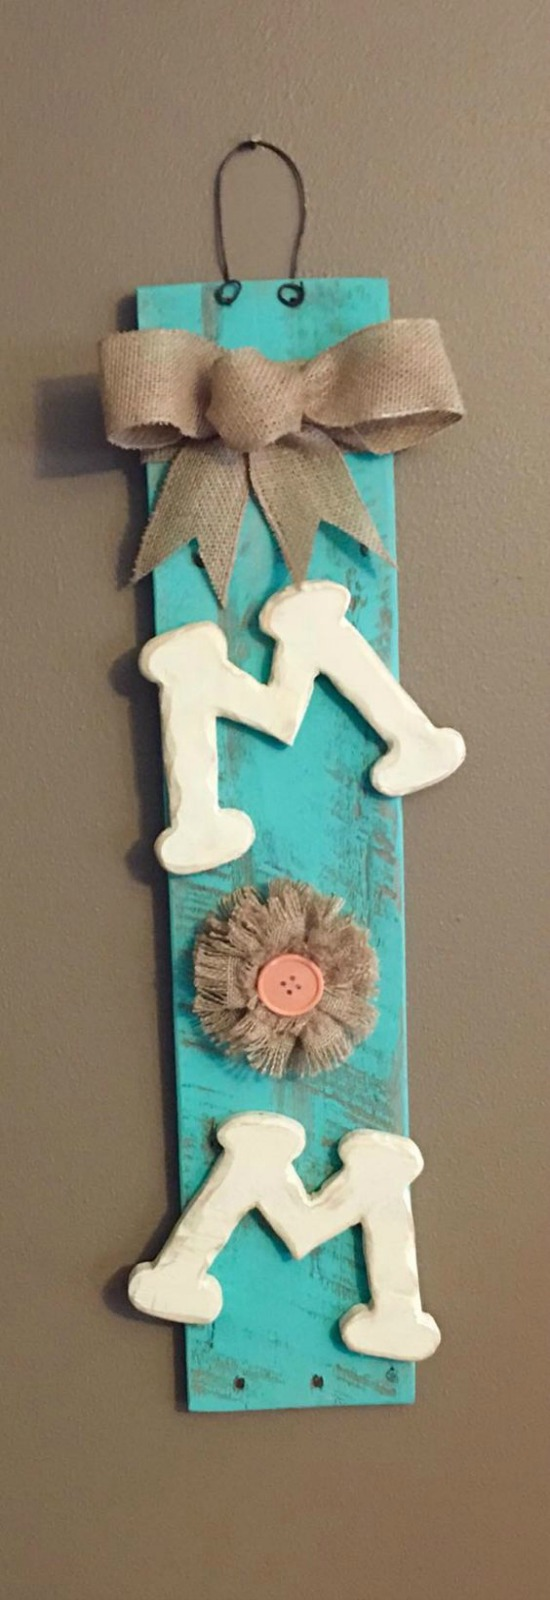 DIY-Mothers-Day-Gift-ideas-15